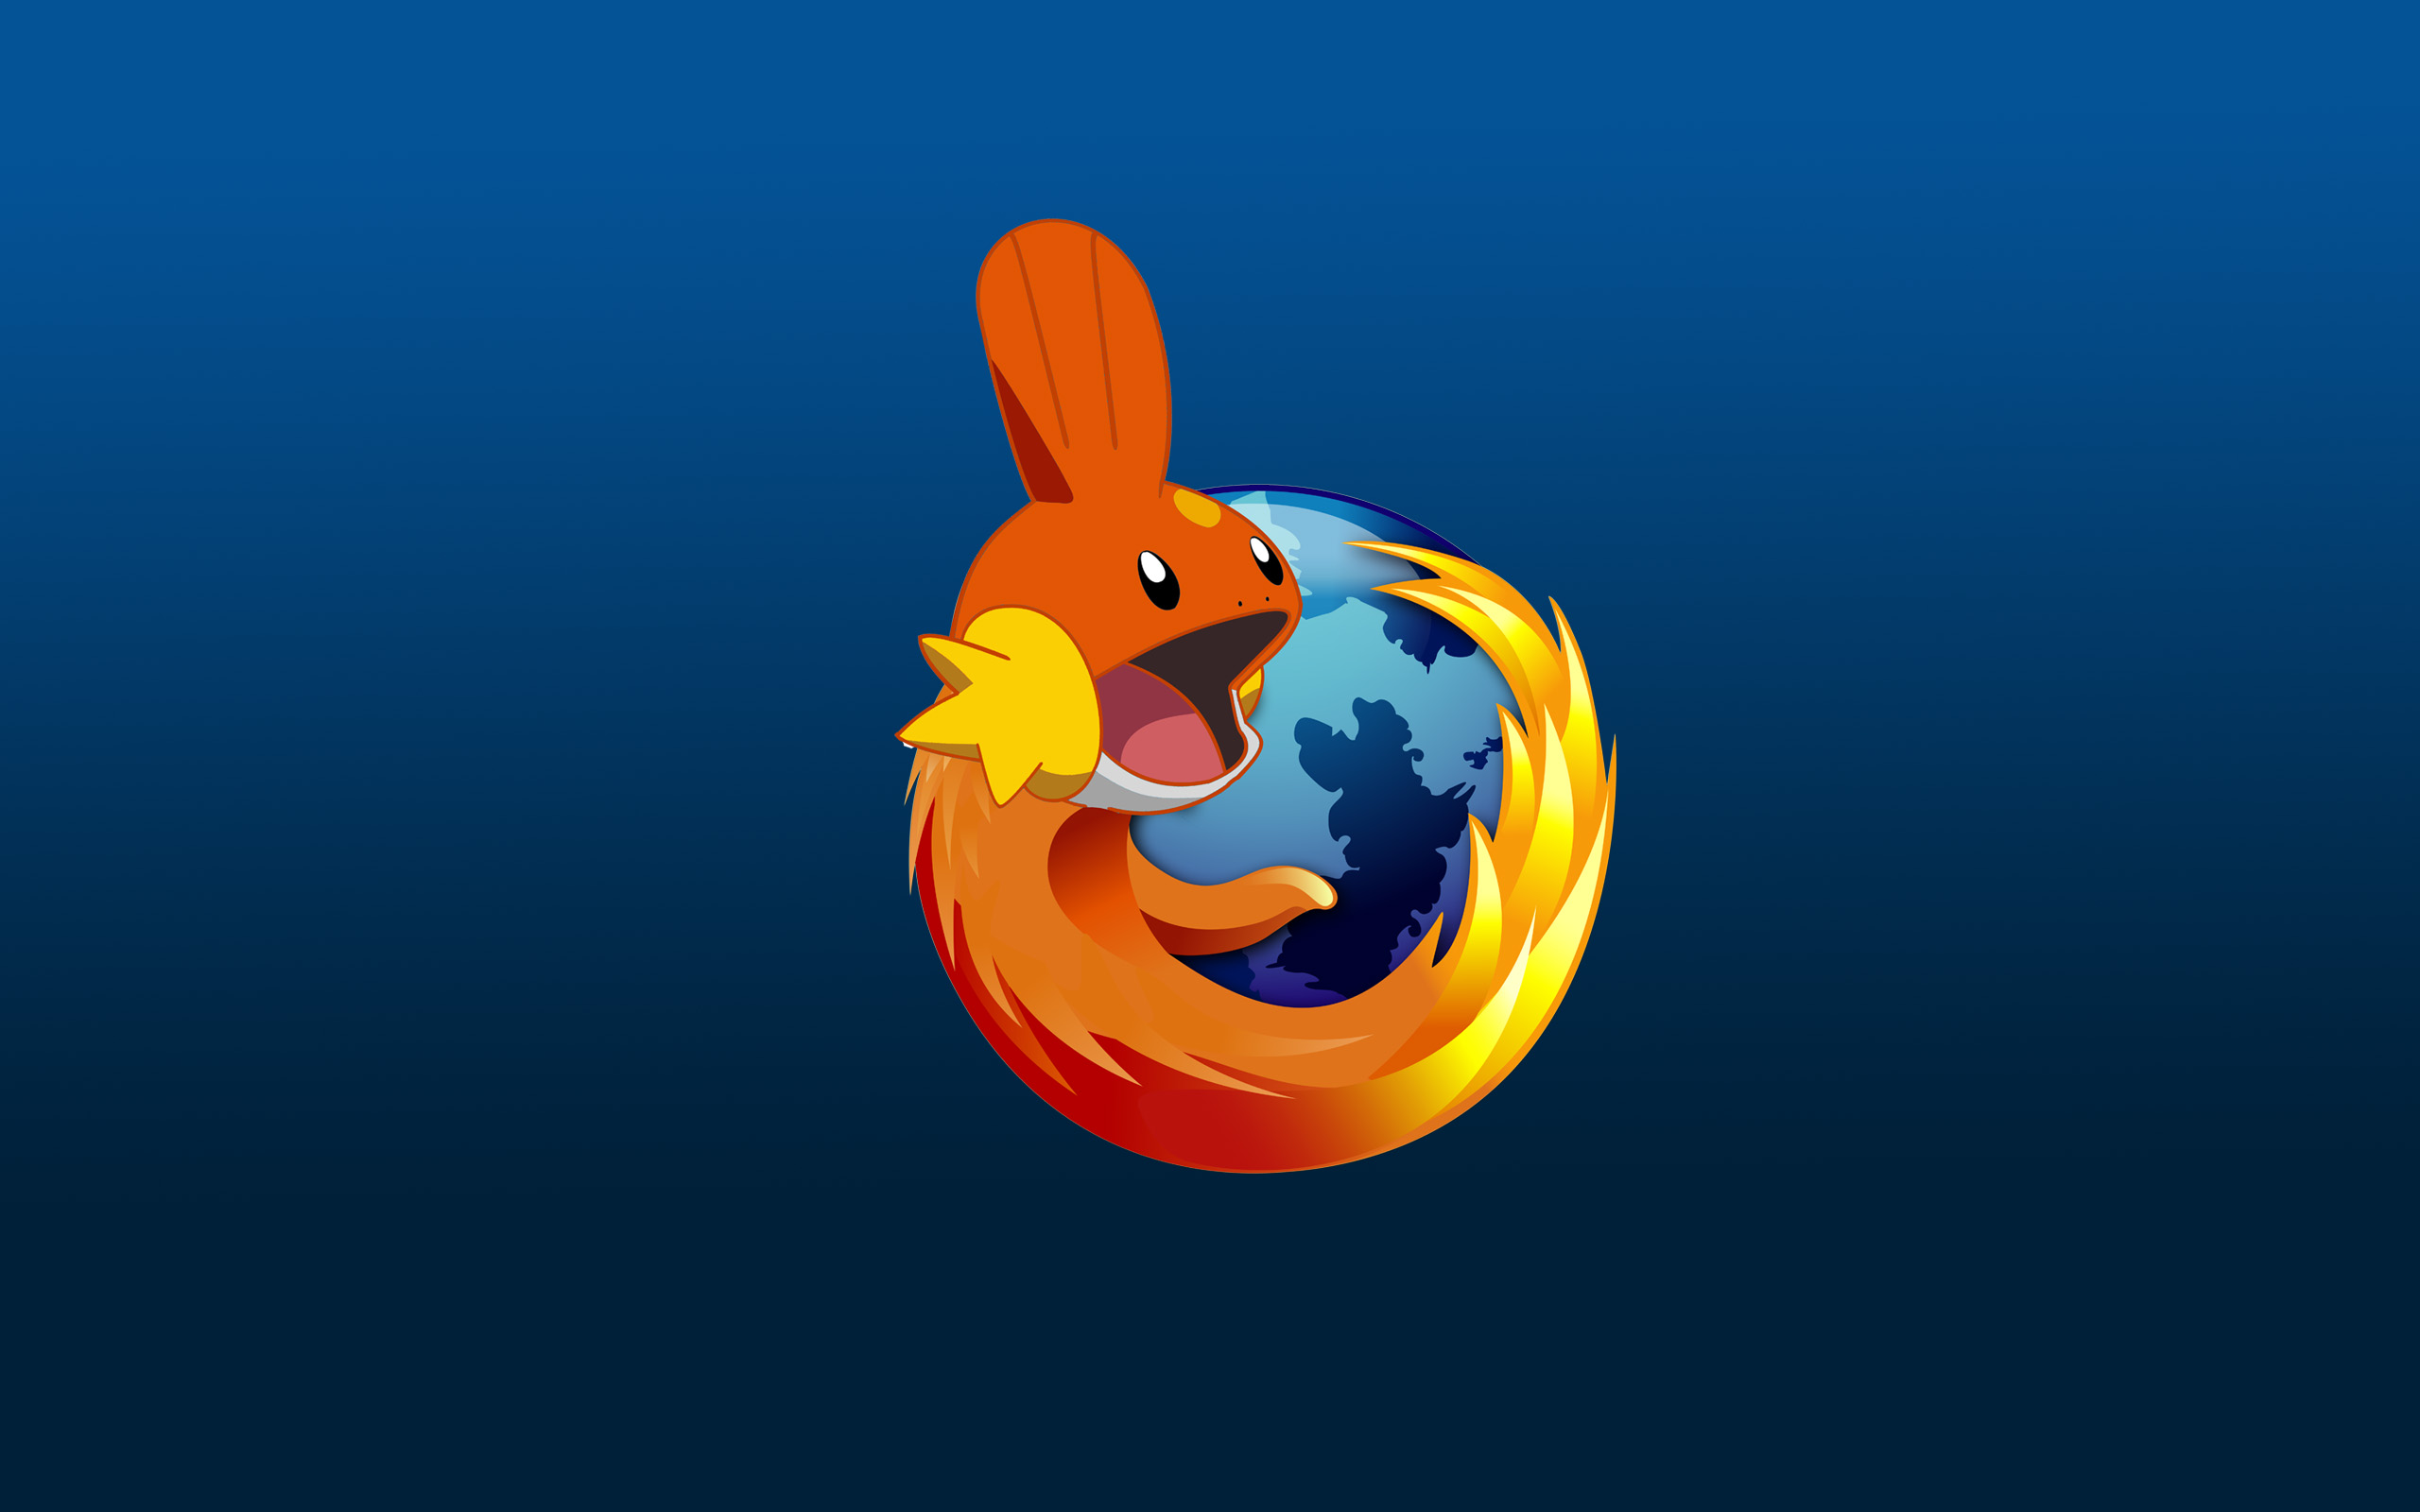 Mudkip Iphone Wallpaper Firefox Full Hd Wallpaper And Background Image 2560x1600